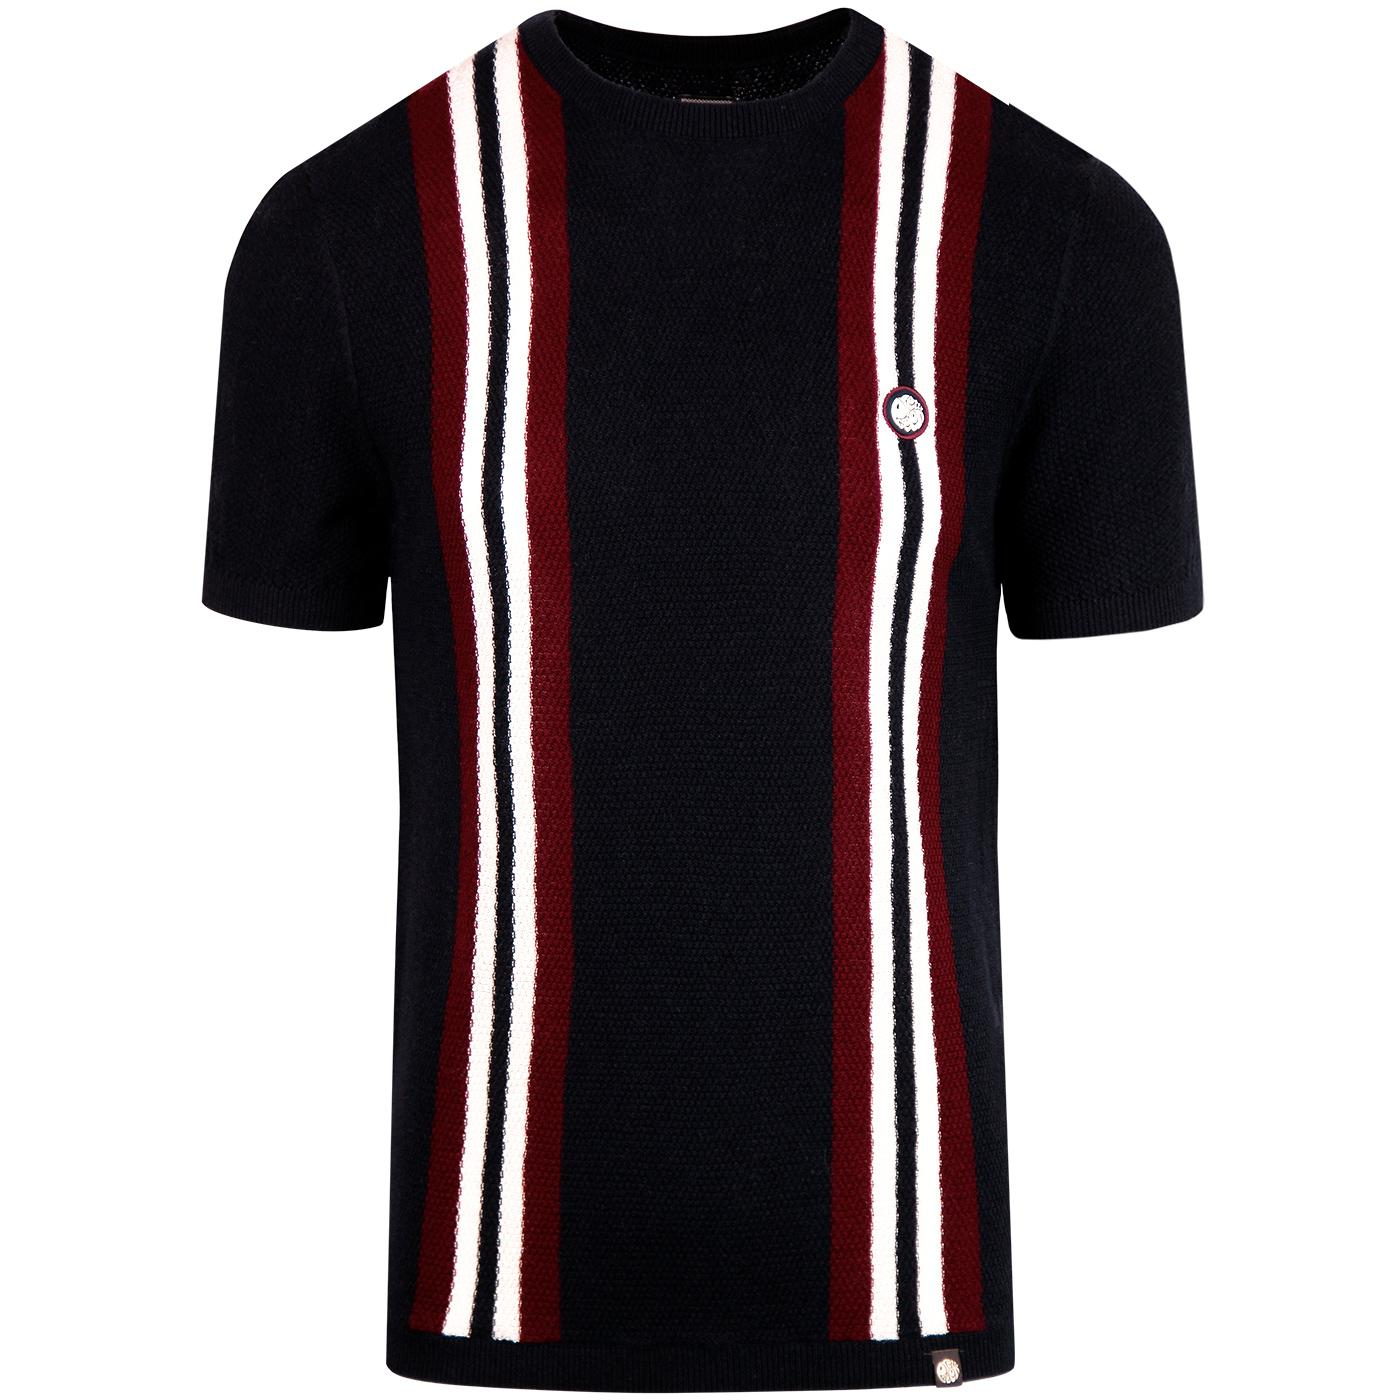 PRETTY GREEN 60s Mod Racing Stripe Knit Tee (Navy)